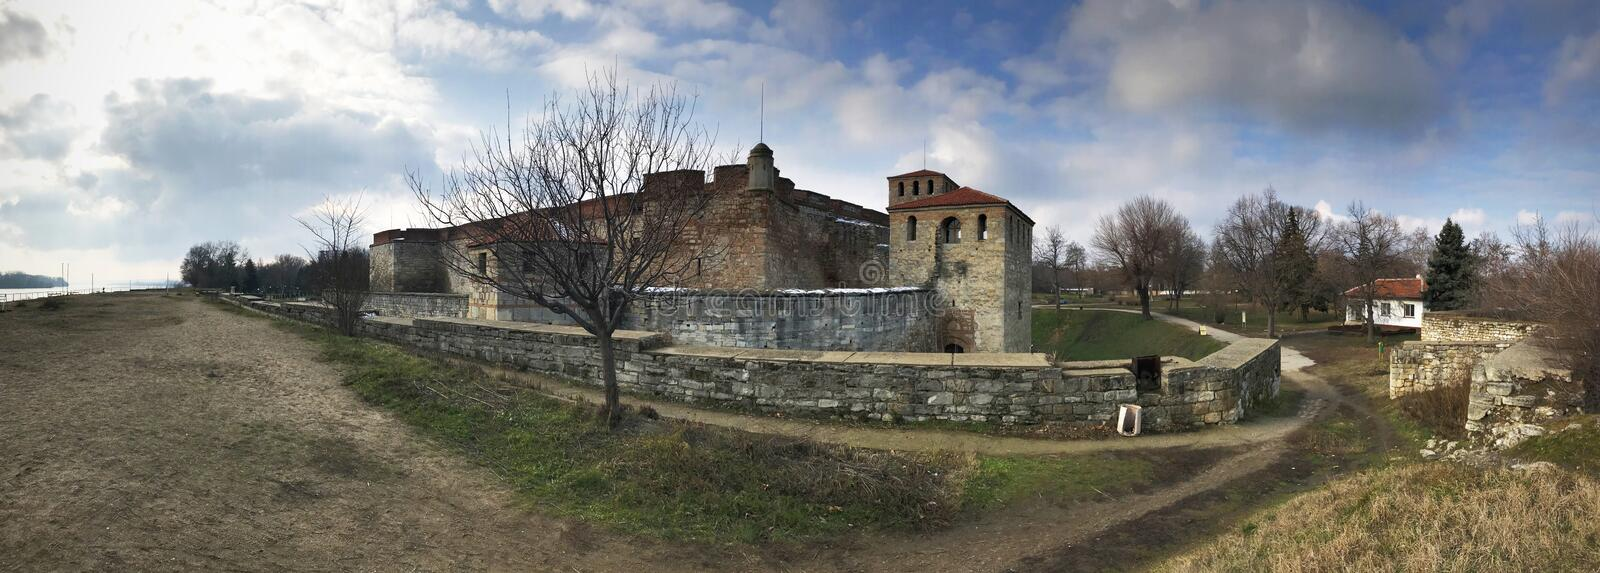 Baba Vida Fortress, Vidin, Bulgaria royalty free stock photography